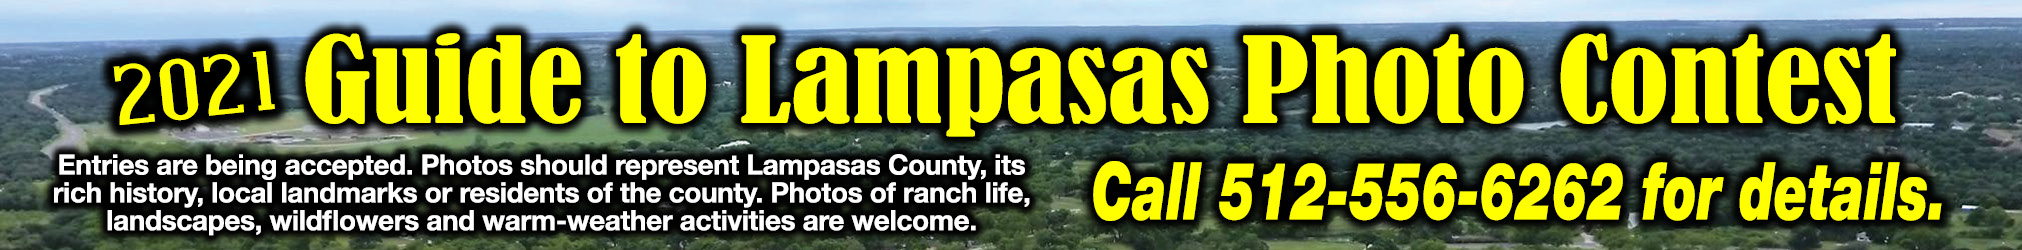 2021 Guide to Lampasas Photo Contest Ad